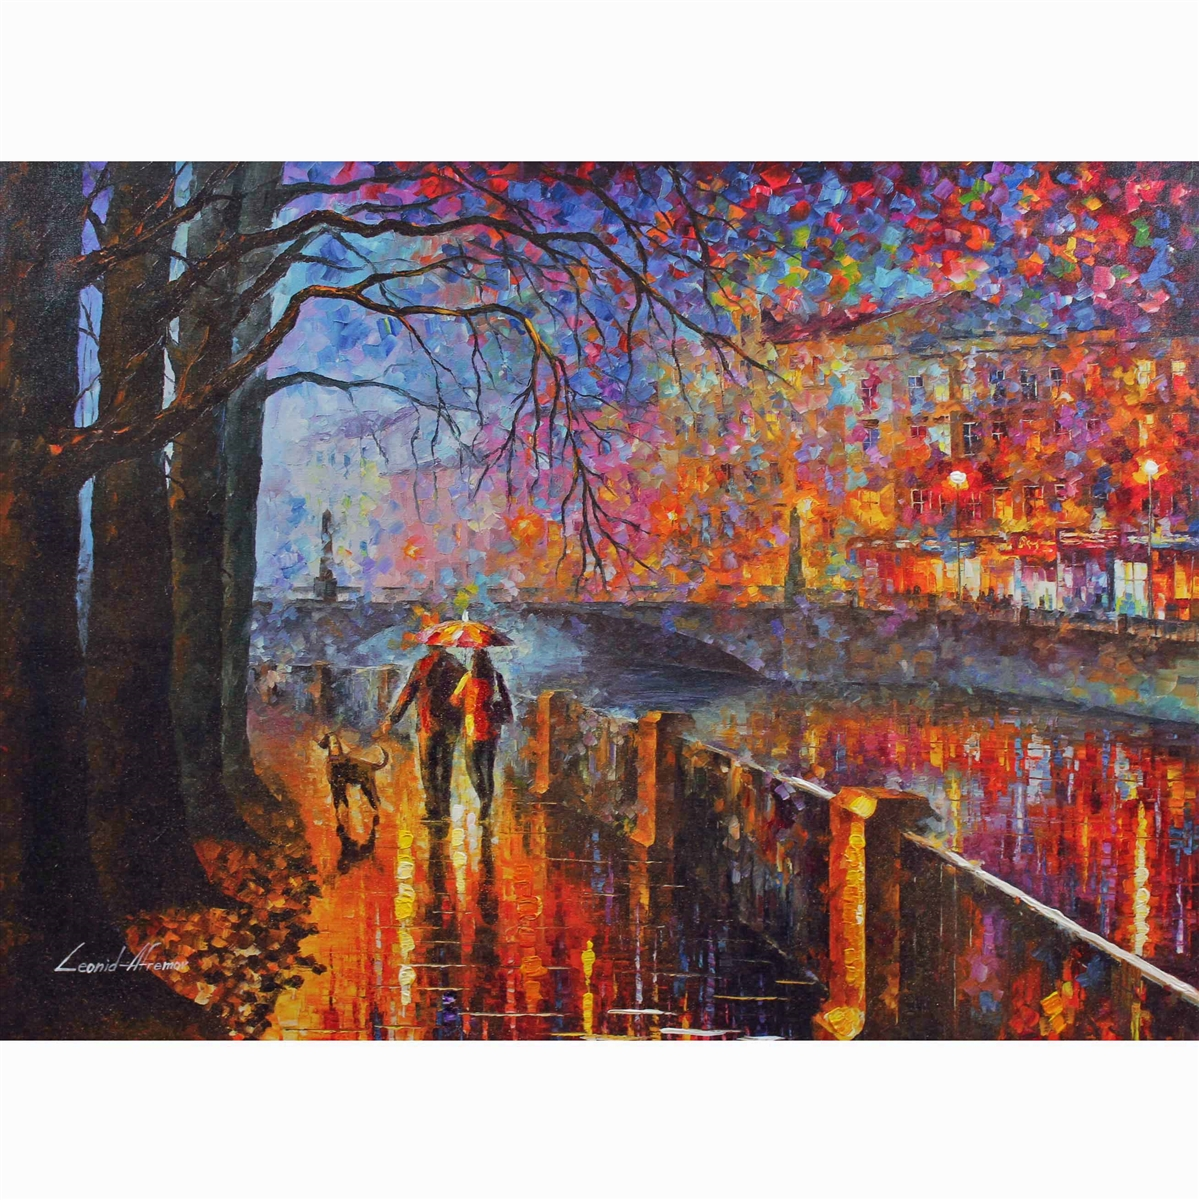 ALLEY BY THE LAKE LEONID AFREMOV ART POSTER 24x36-11395